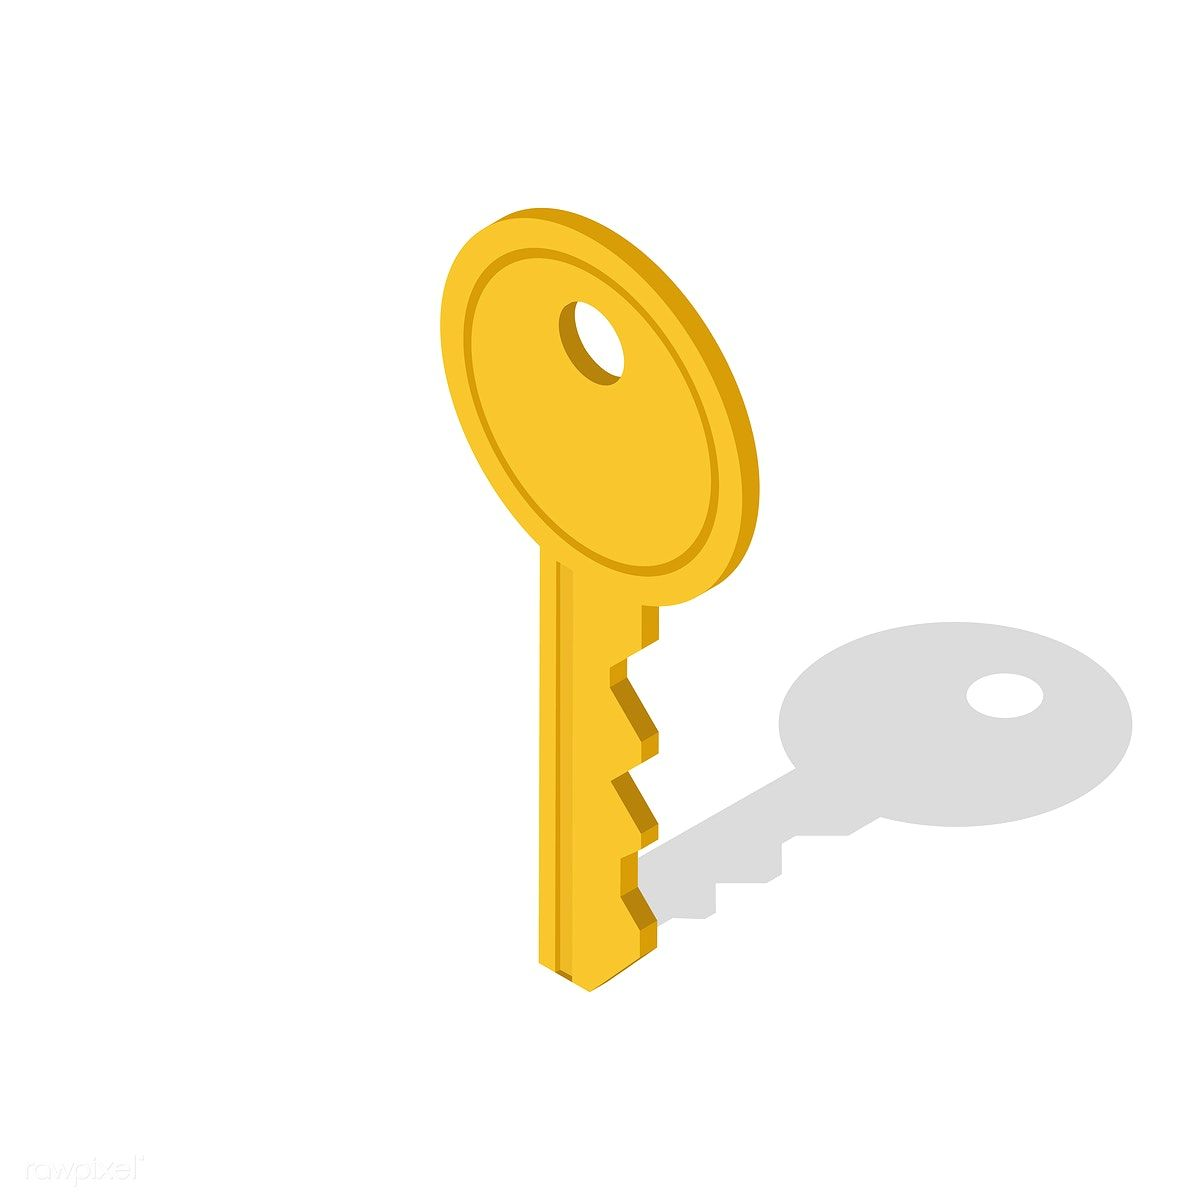 Vector Image Of Key Icon Free Image By Rawpixel Com Key Icon Image Key Vector Images